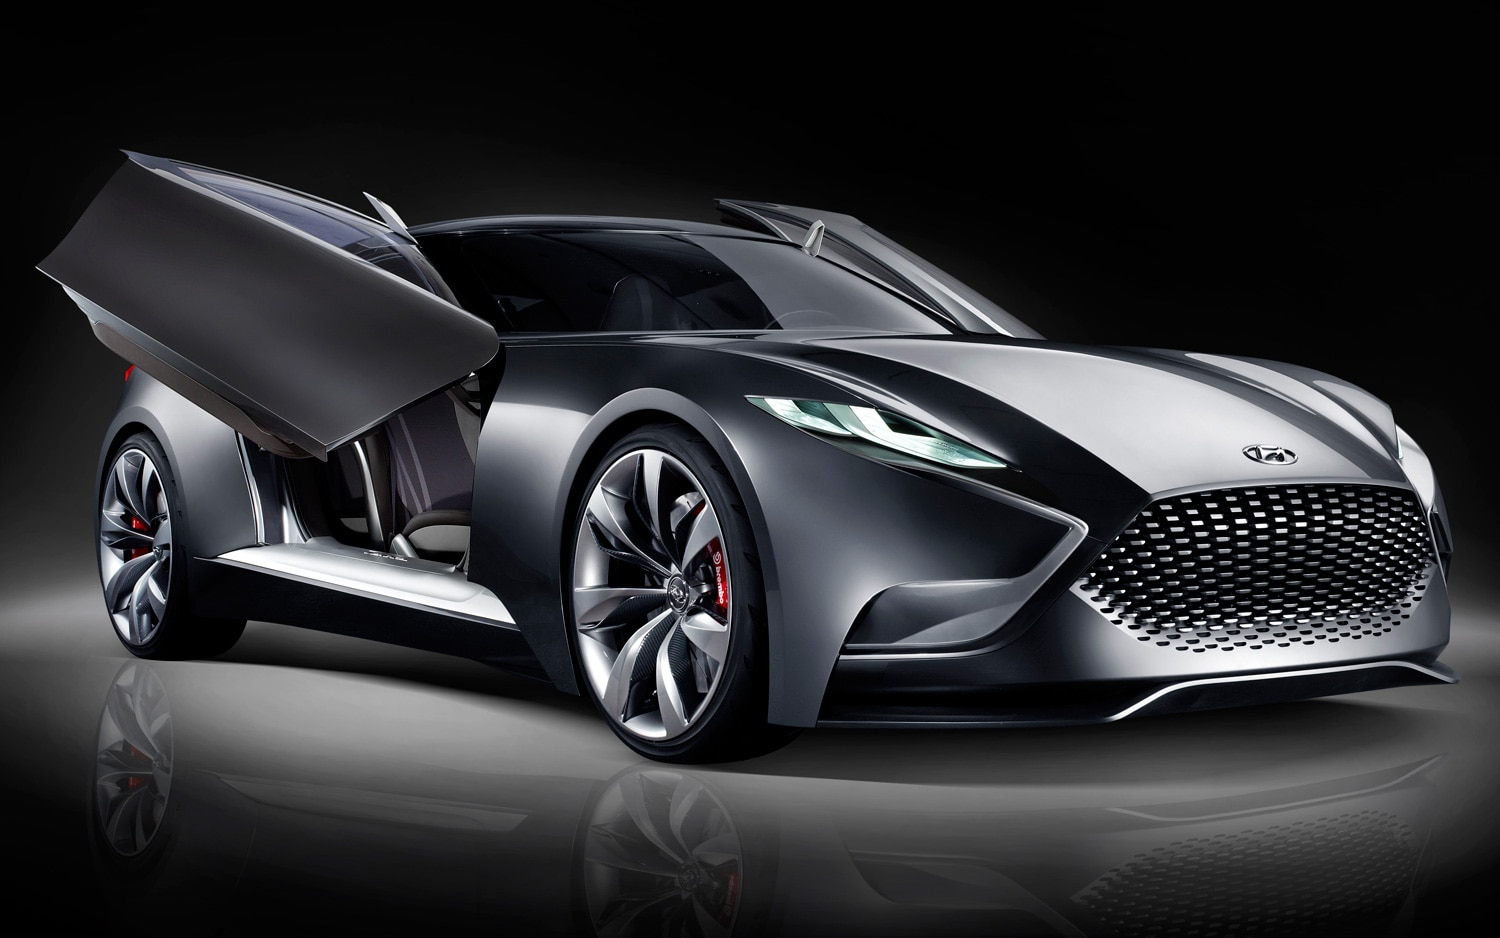 Hyundai HND 9 Coupe Concept Front Three Quarters View Doors Open1